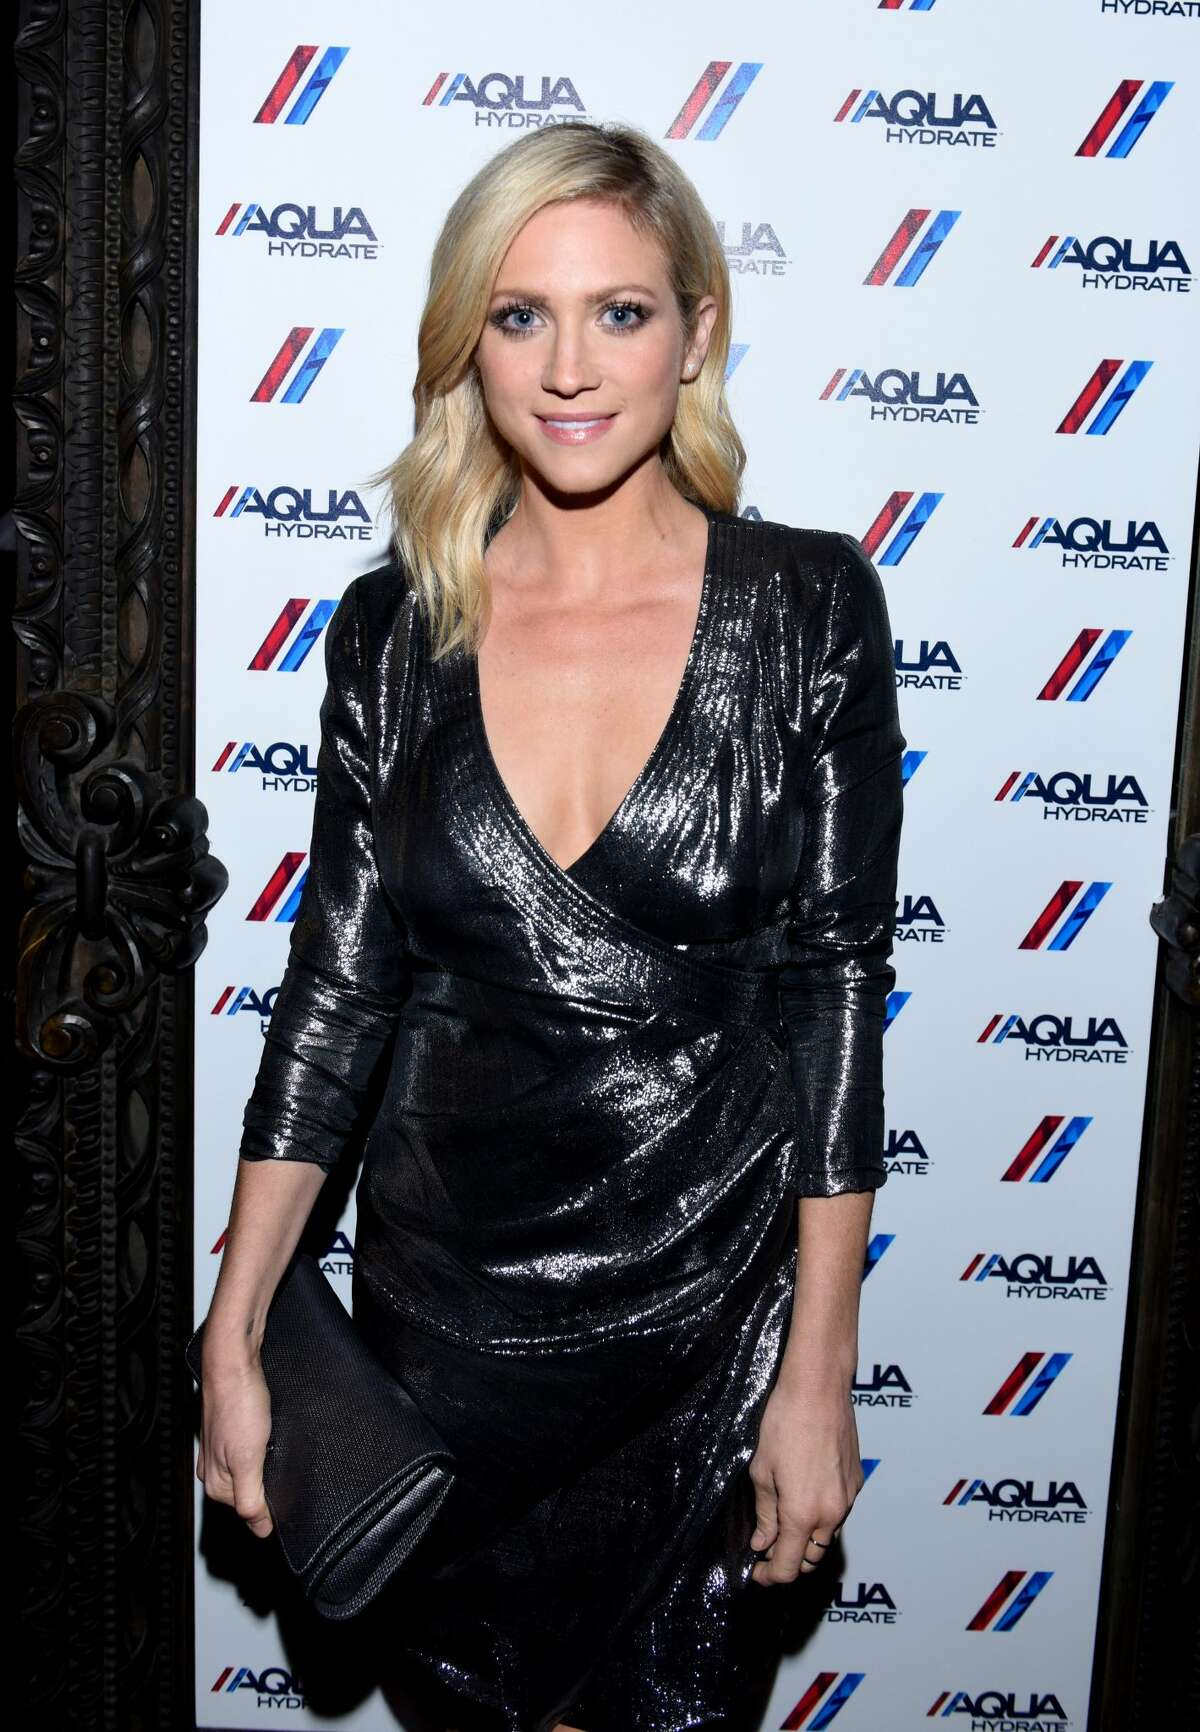 LOS ANGELES, CA - SEPTEMBER 07: Actress Brittany Snow attends a private event at Hyde Staples Center hosted by AQUAhydrate for the Drake and Future concert on September 7, 2016 in Los Angeles, California. (Photo by Vivien Killilea/Getty Images for AQUAhydrate)